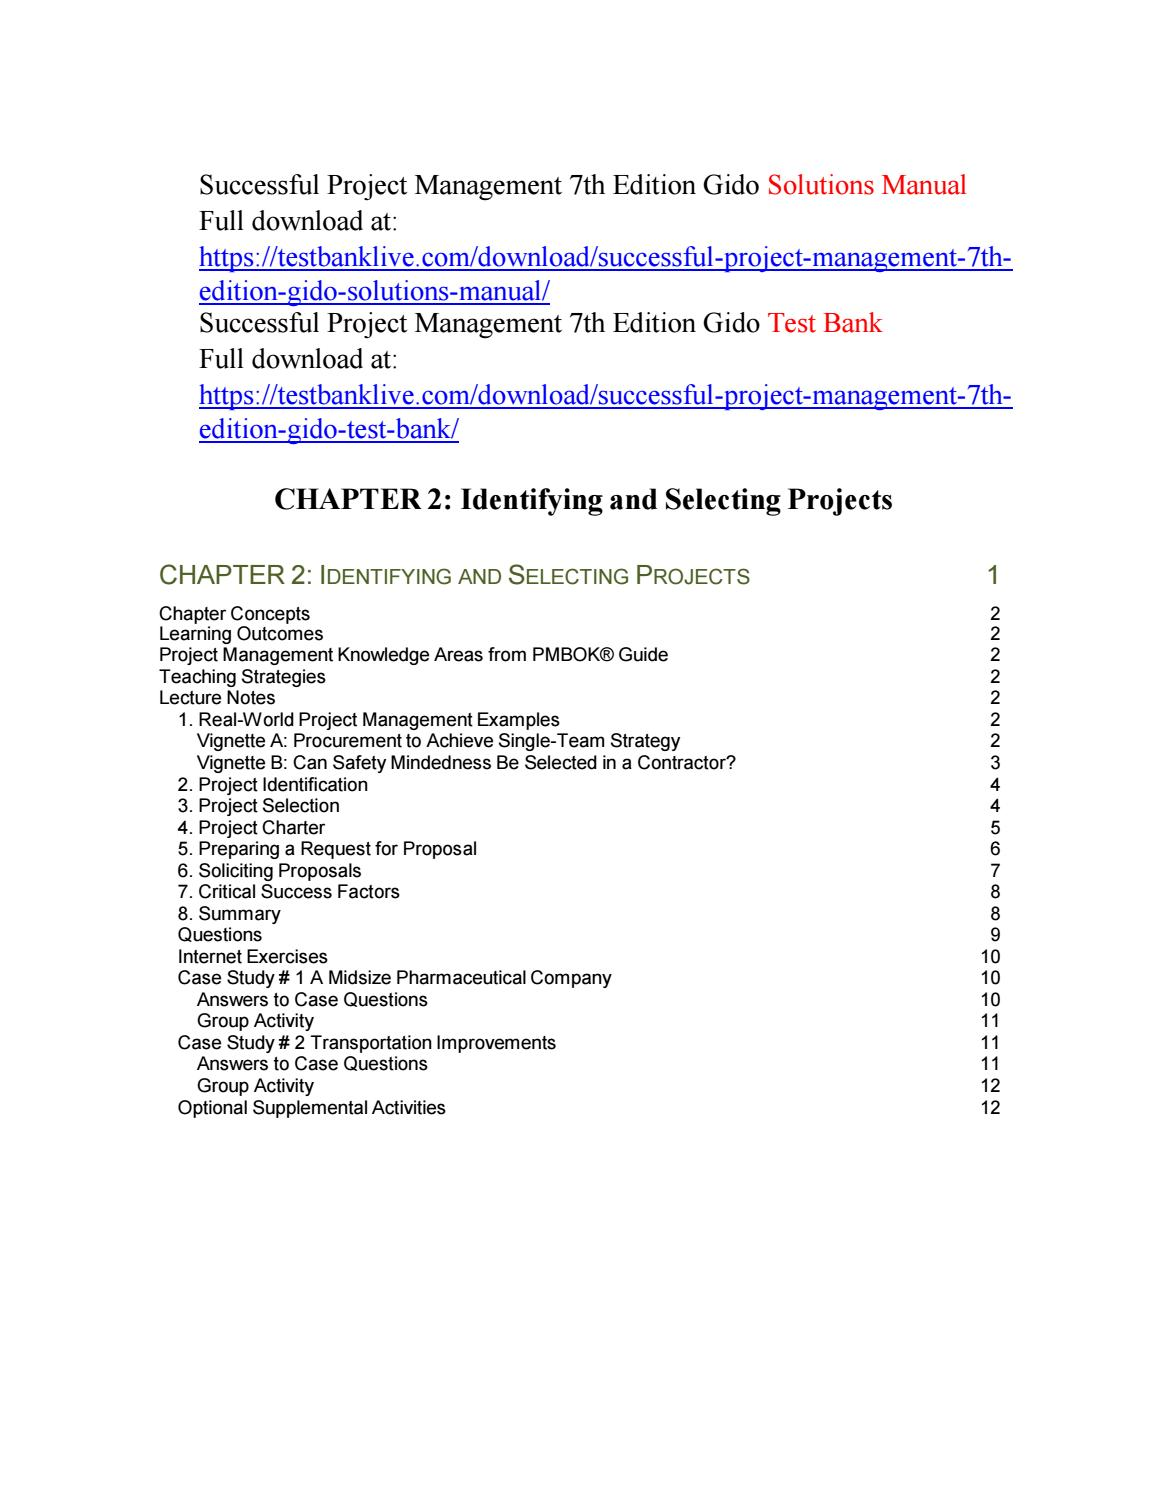 project management case studies 4th edition solutions manual